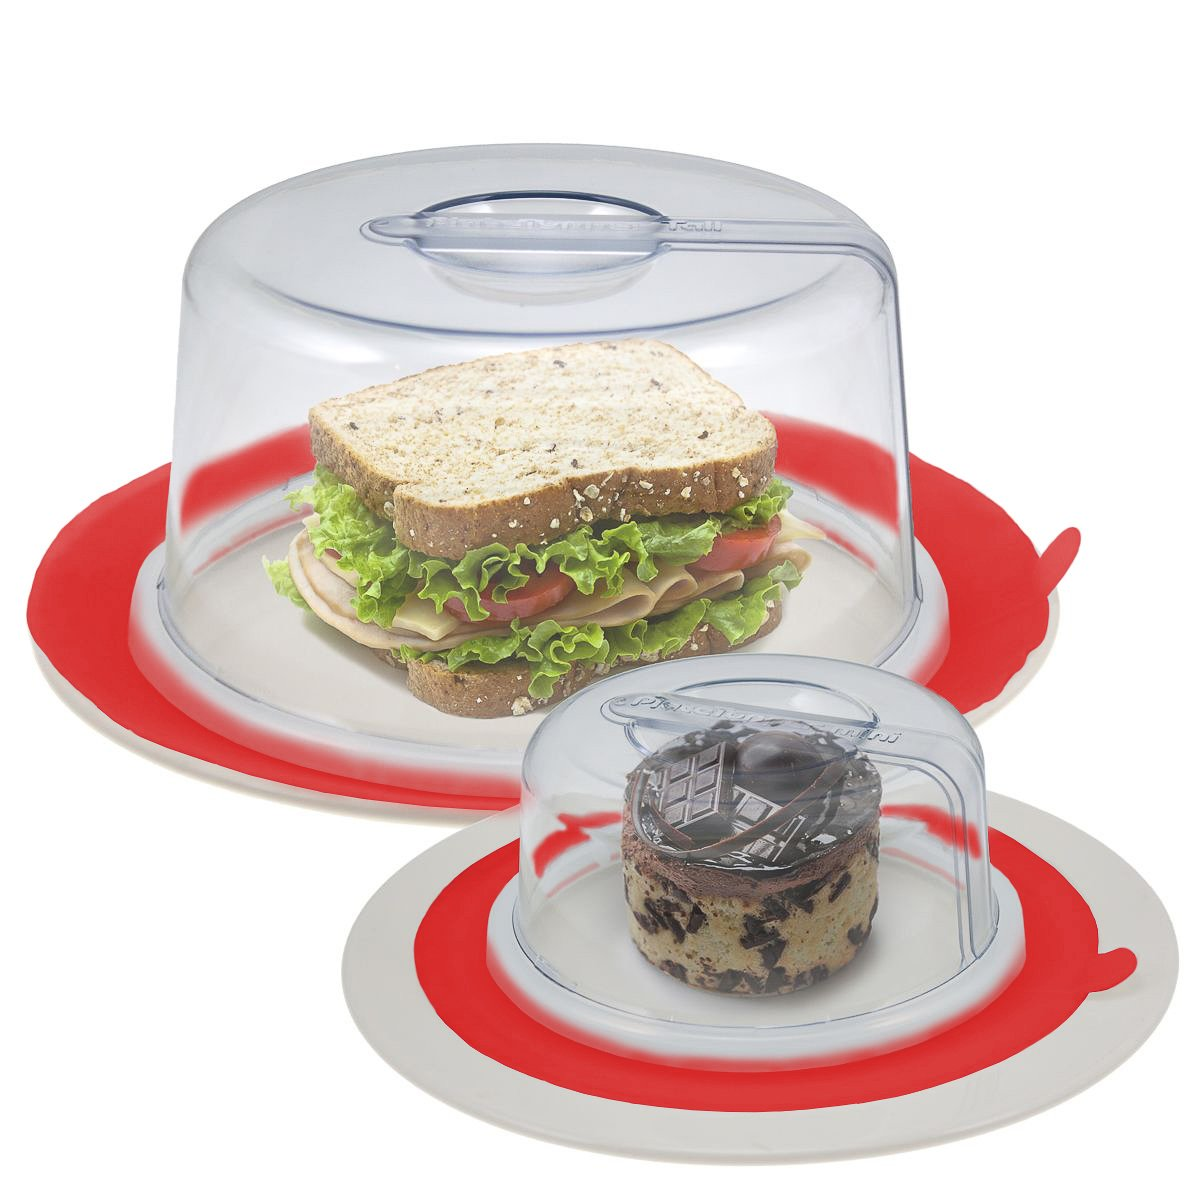 2 PlateTopper (Mini & Tall) Universal Leftover Lid Microwave Cover Airtight #Red Plate Topper